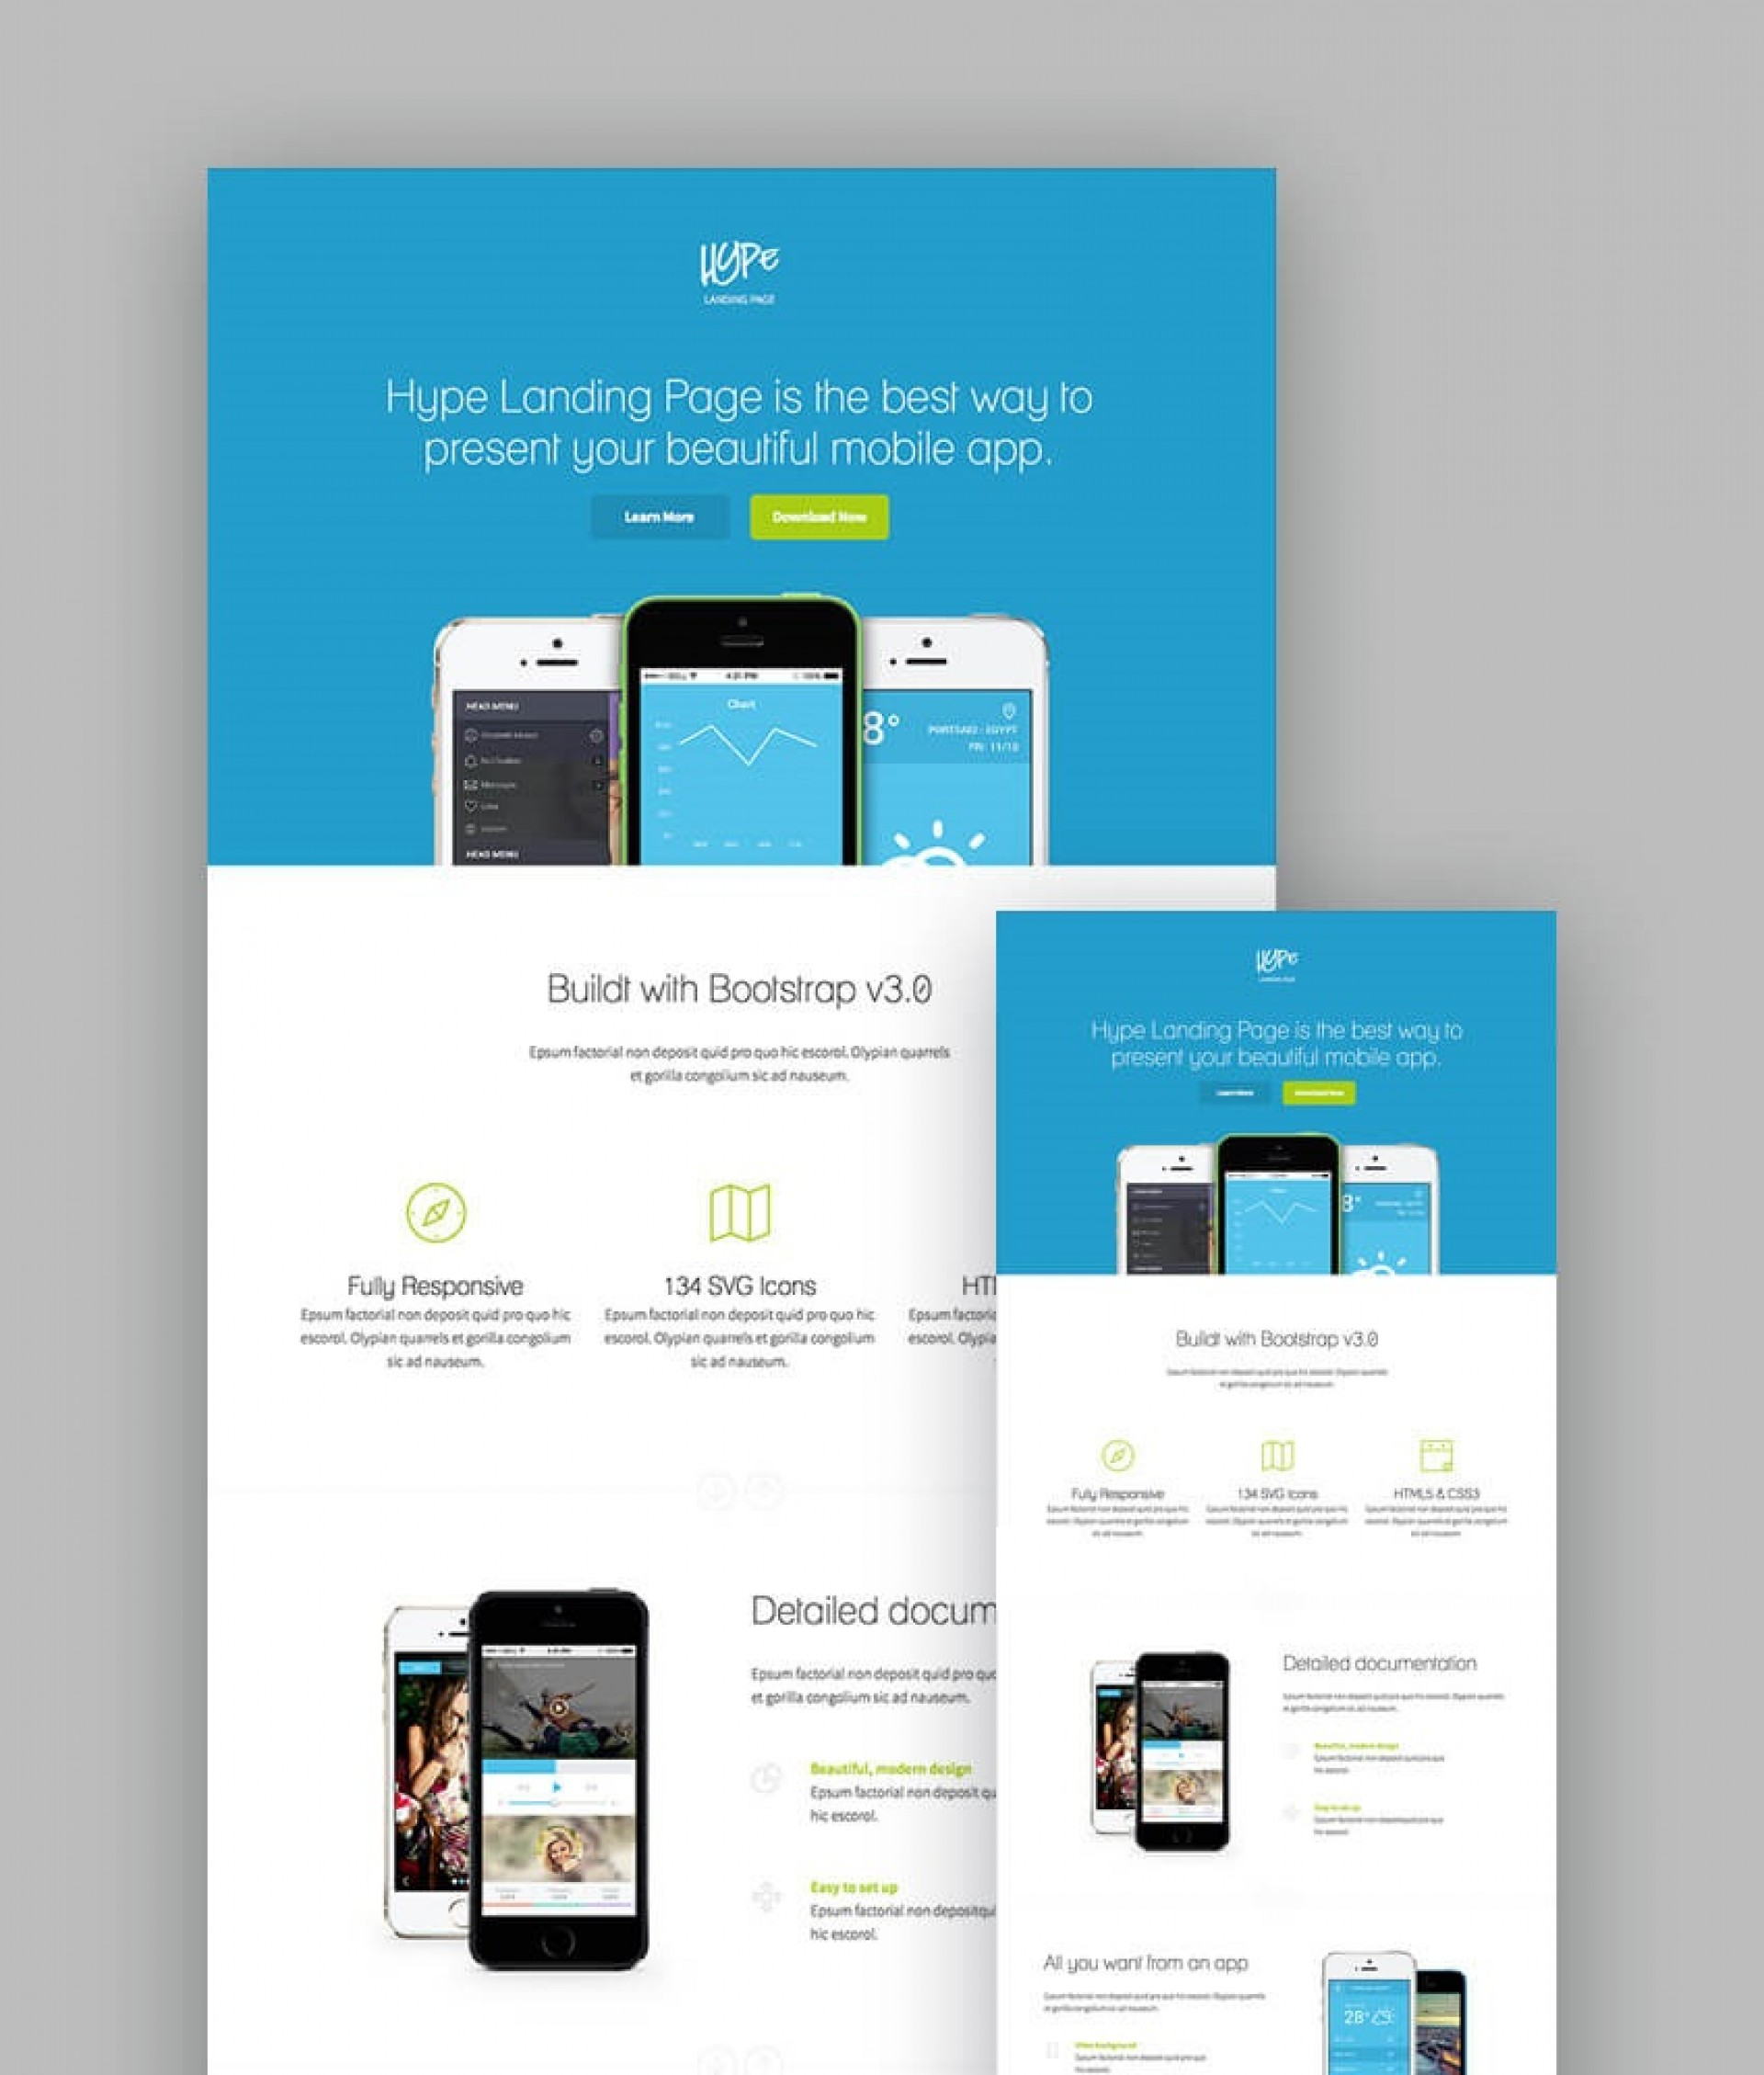 004 Awesome Responsive Landing Page Template Inspiration  Free Html With Flexbox Html51920